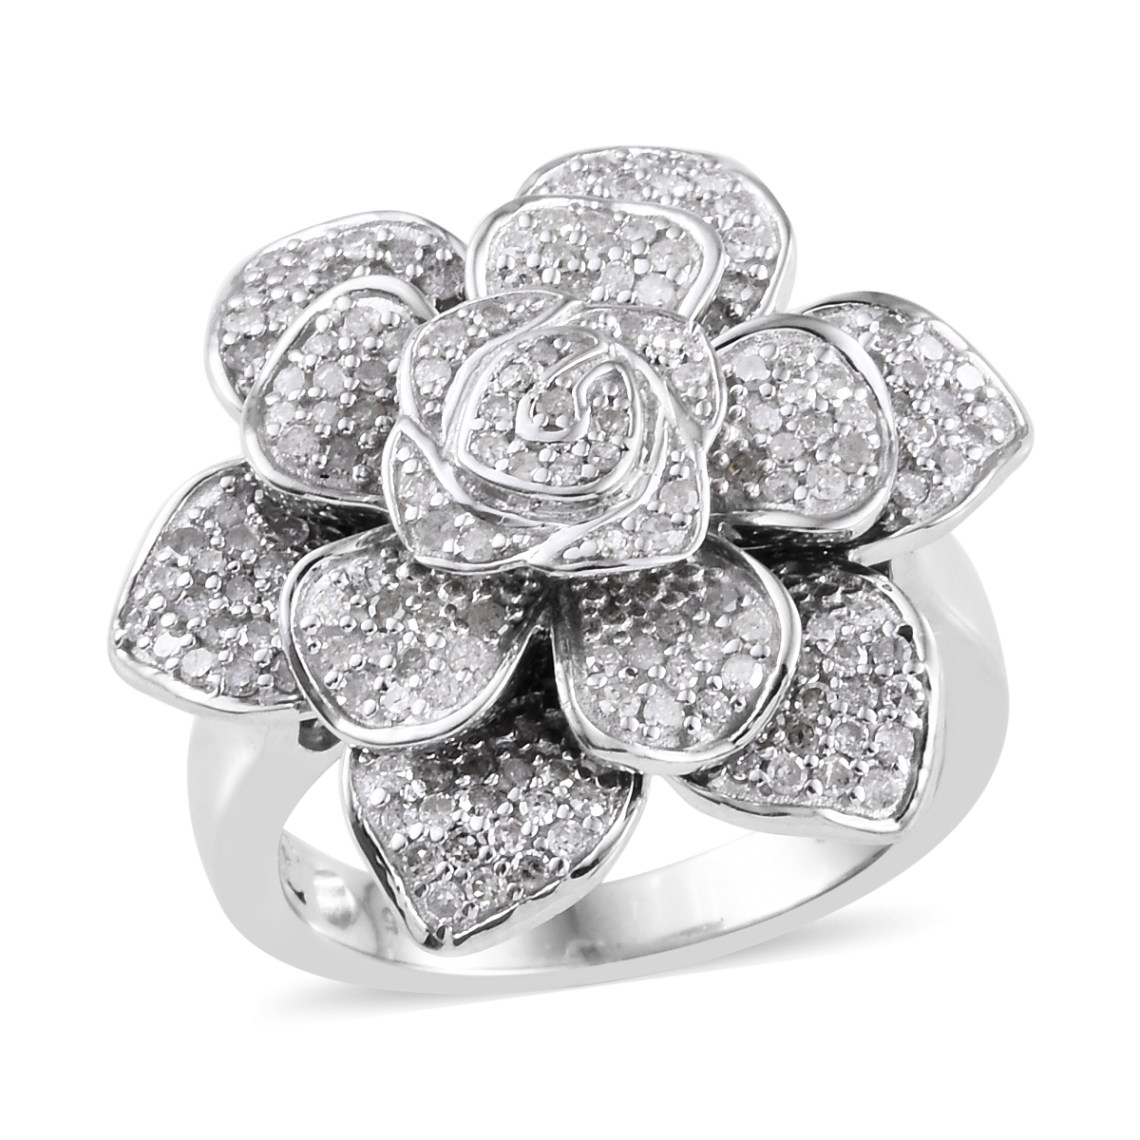 Floral diamond ring on white background.